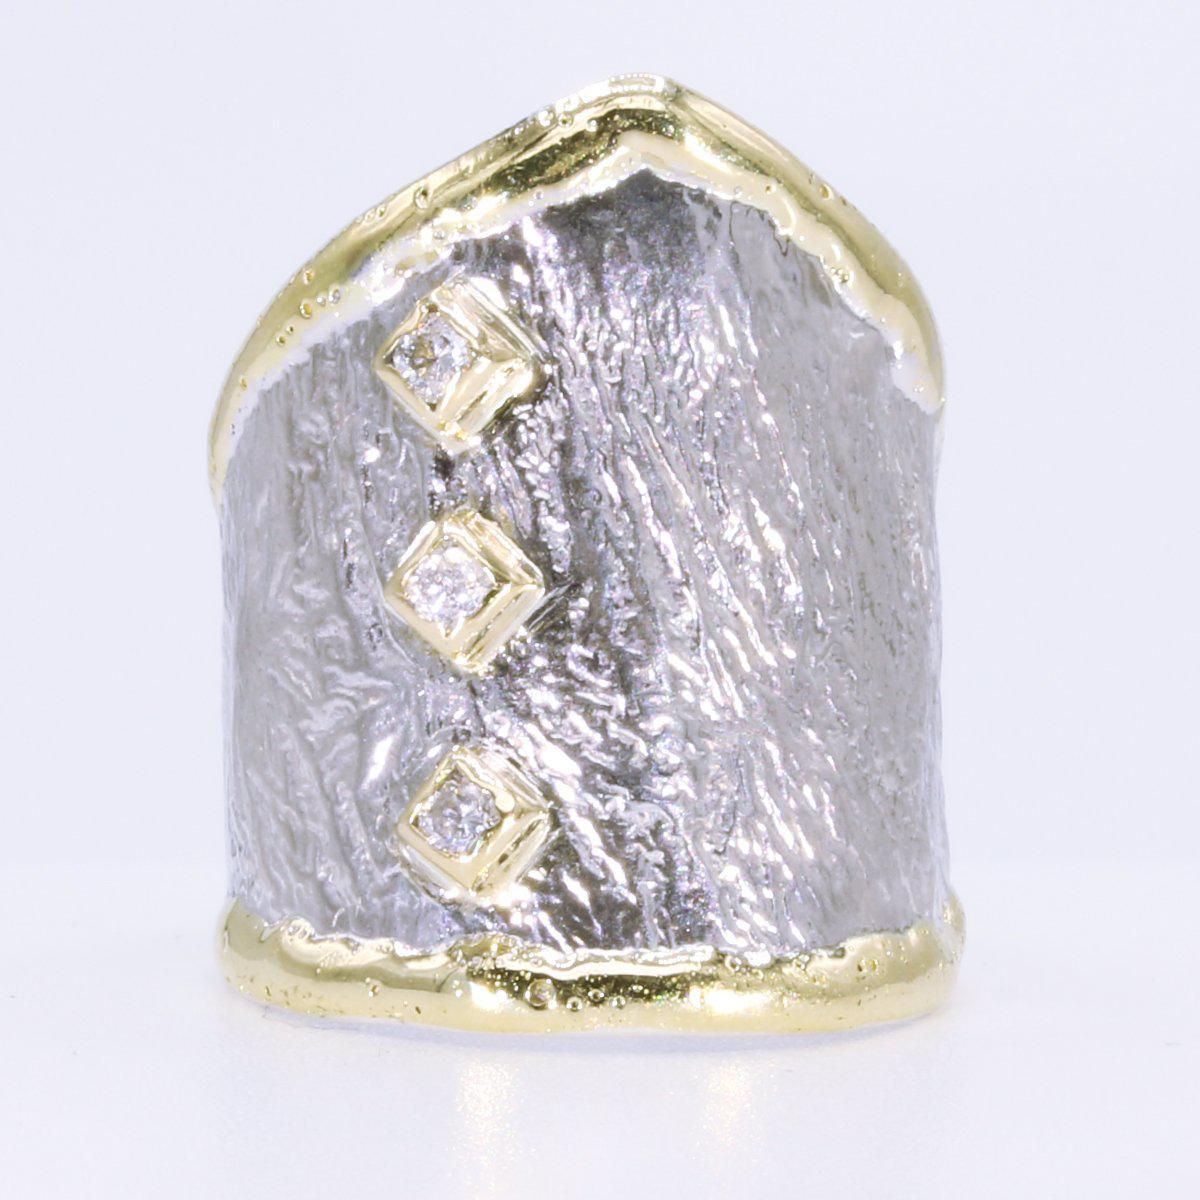 14K Gold & Crystalline Silver Diamond Ring - 35170-Fusion Designs-Renee Taylor Gallery